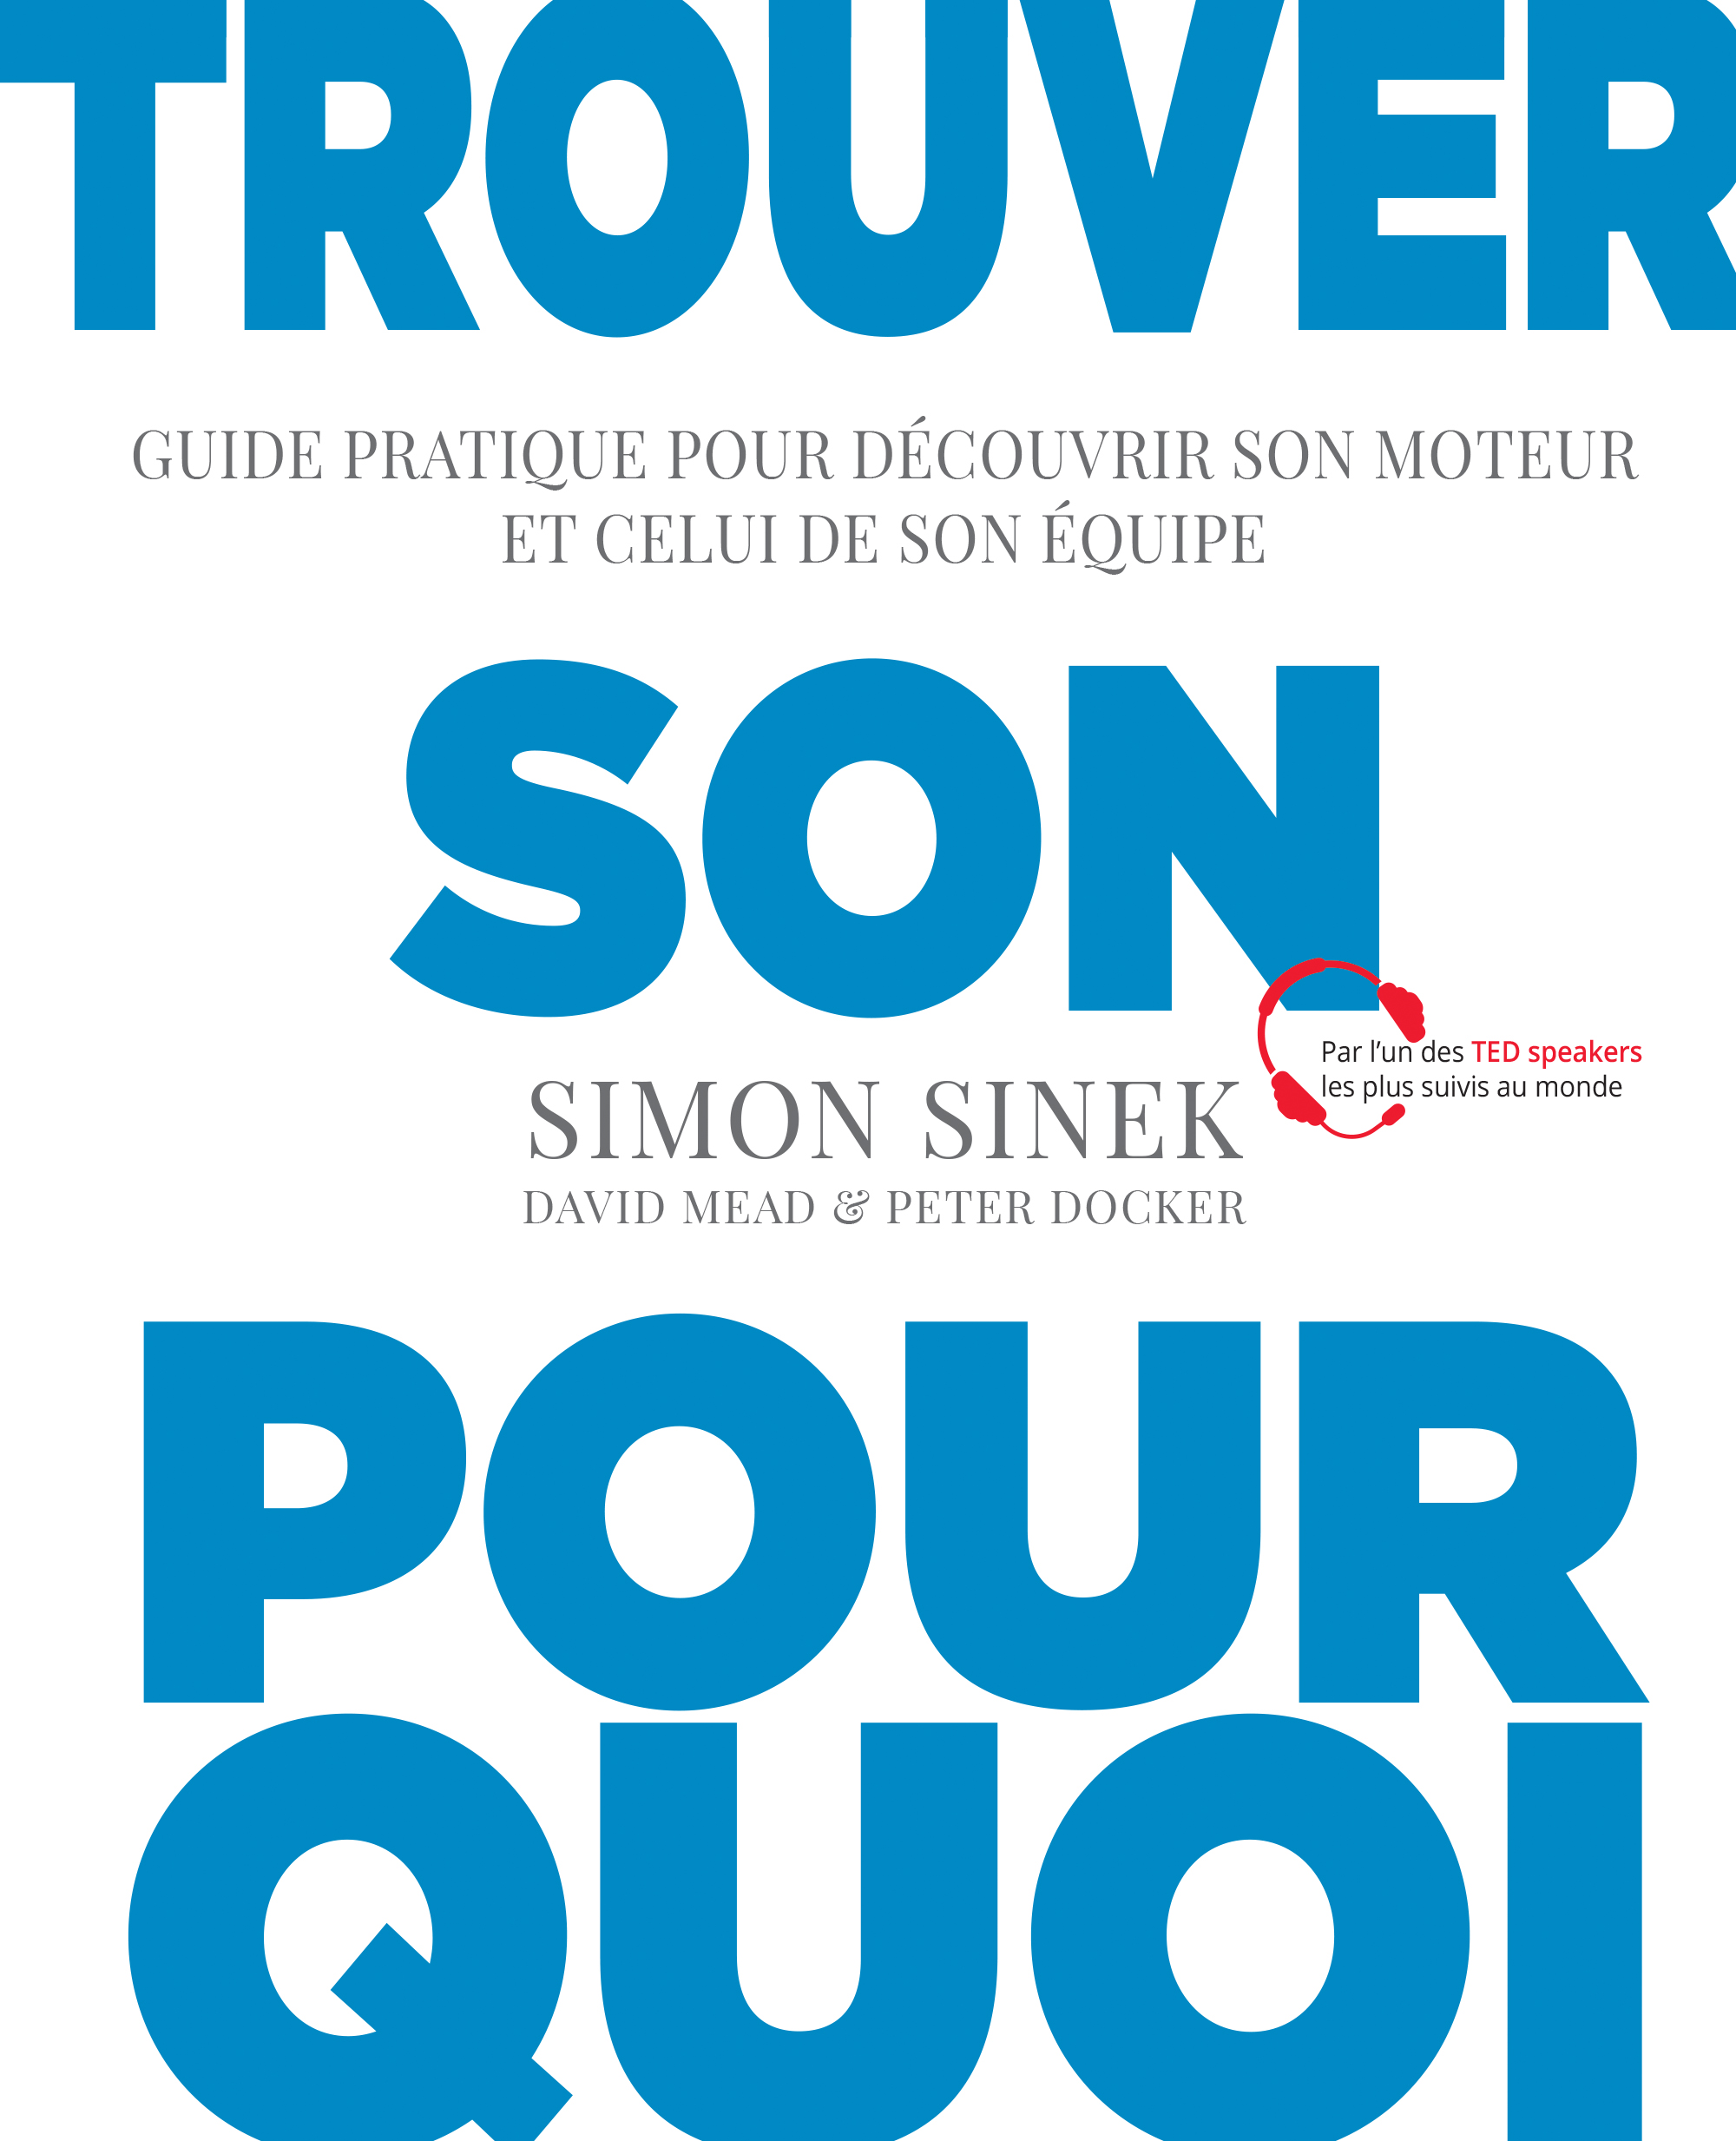 Trouver son pourquoi De Simon Sinek, Peter Docker et David Mead - Pearson